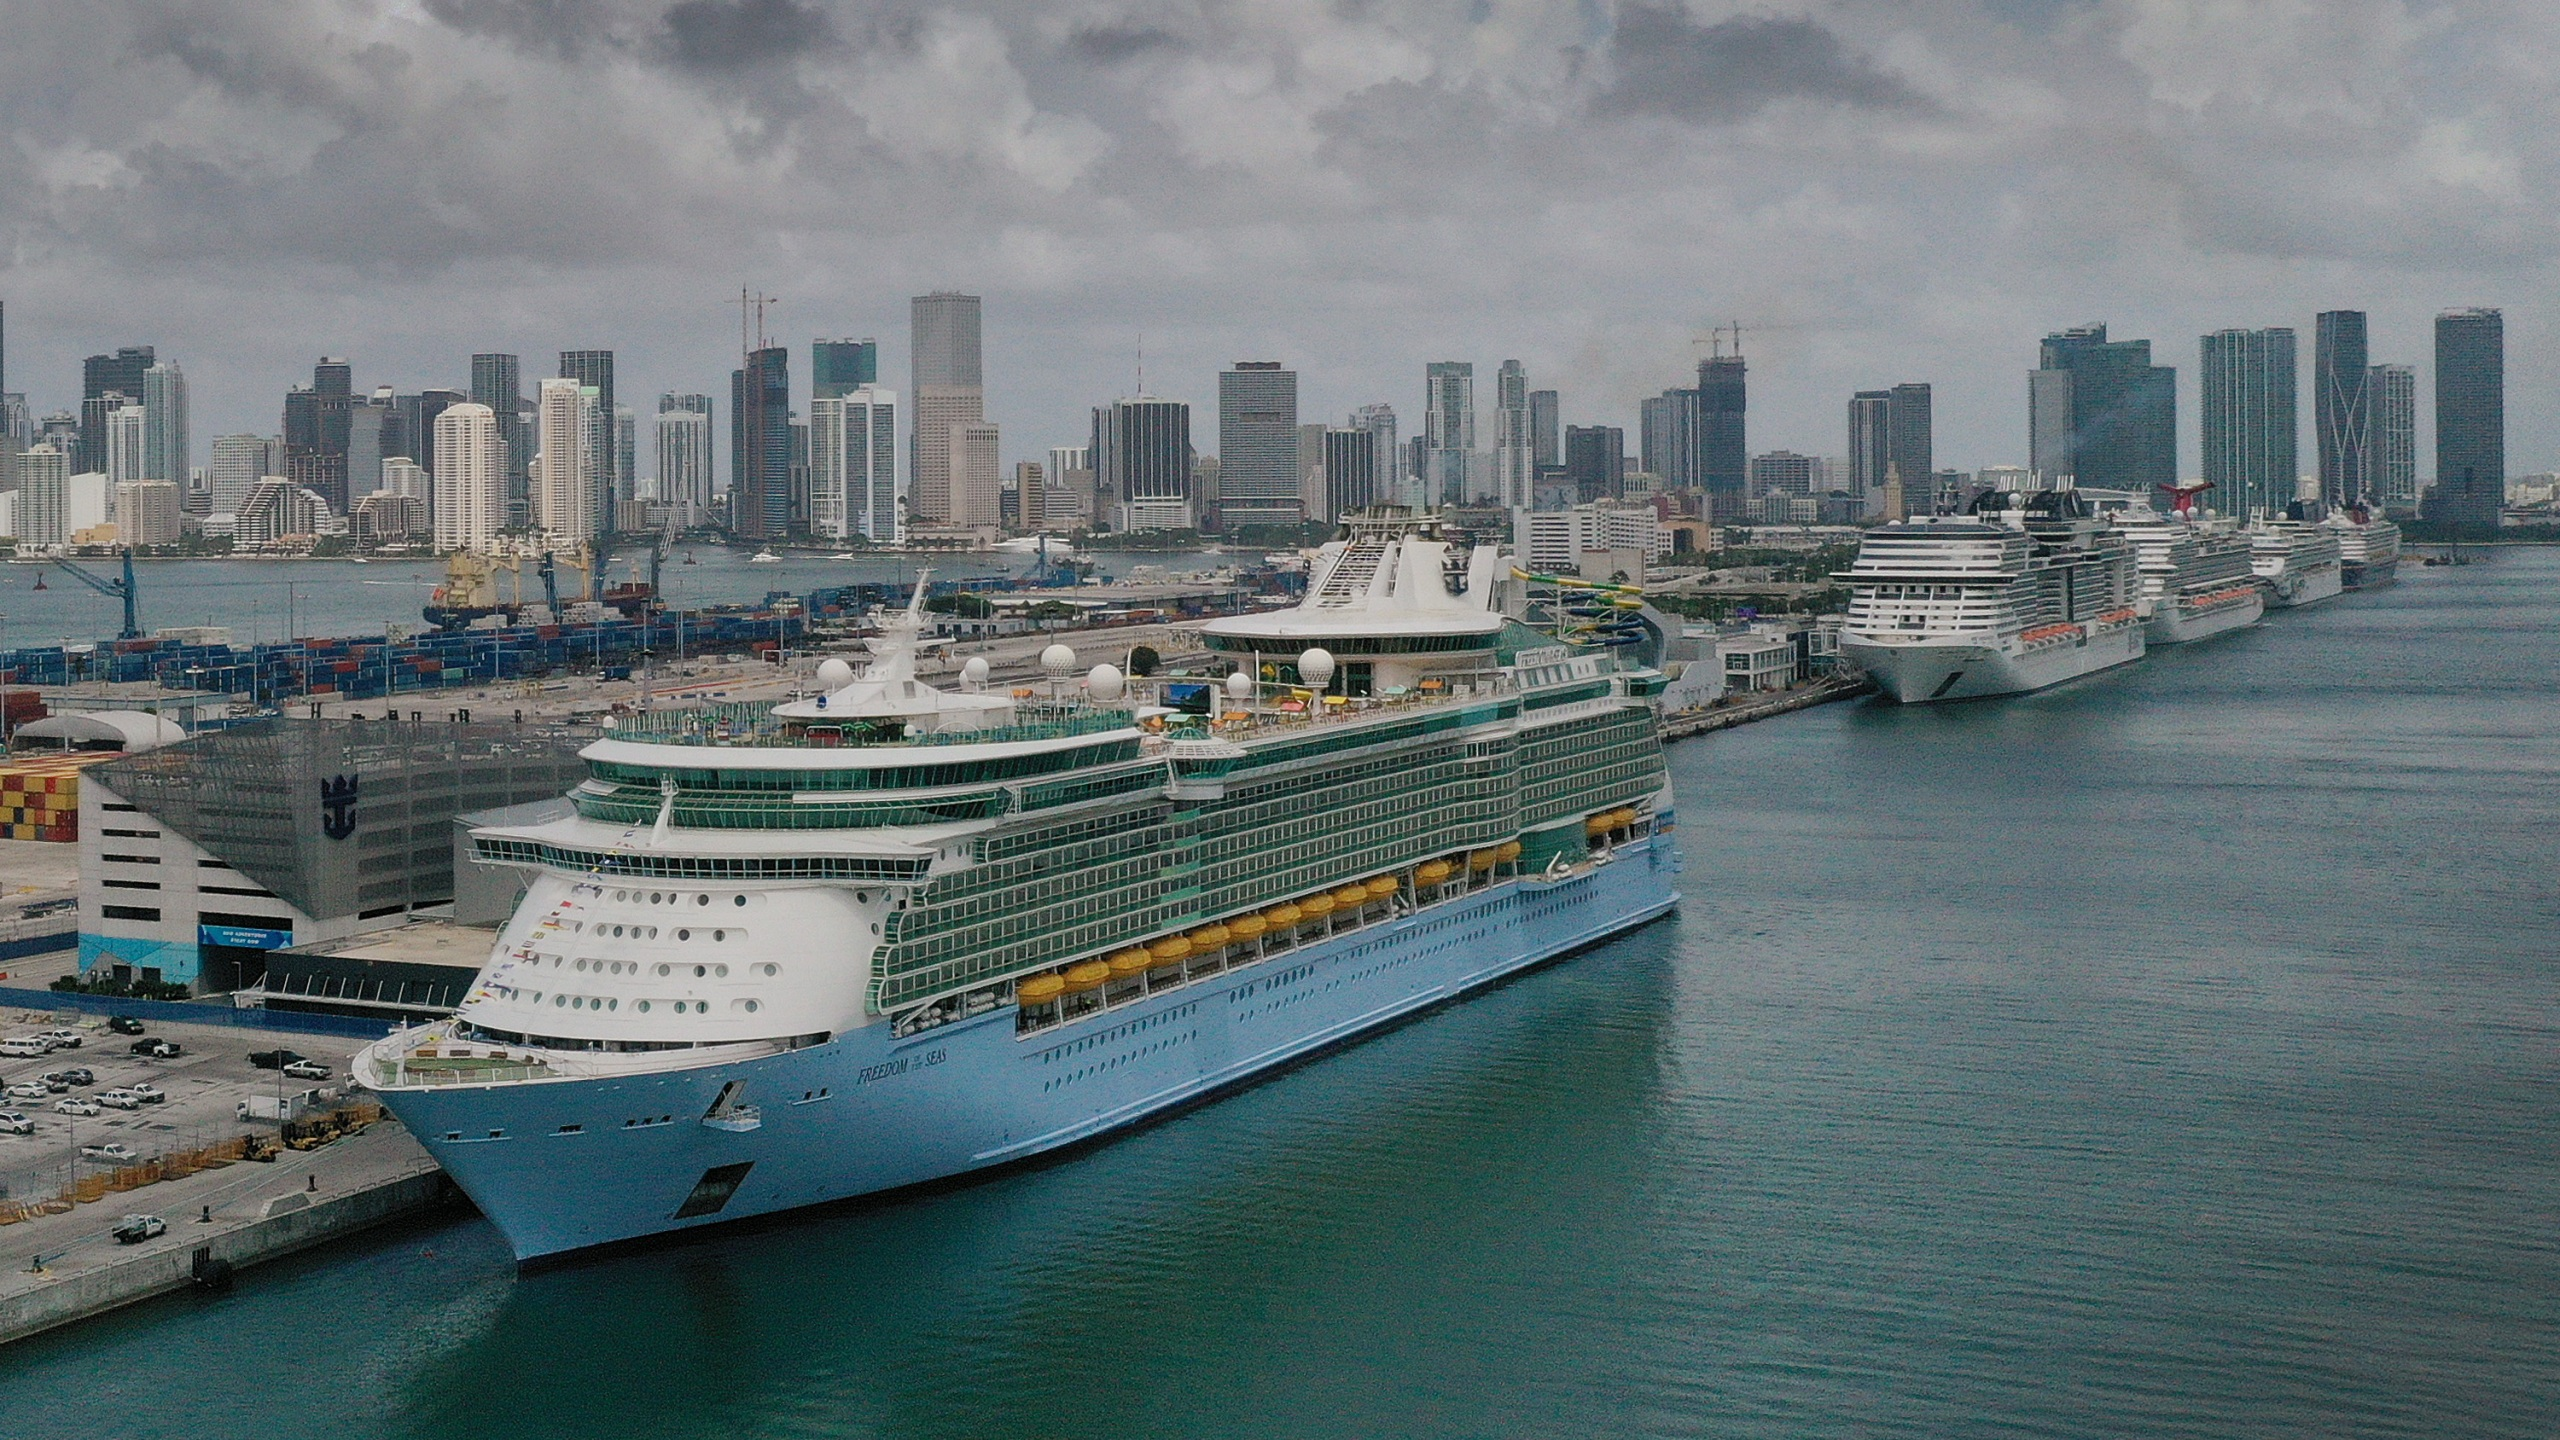 In an aerial view, the Royal Caribbean Freedom of the Seas (L) prepares to set sail from PortMiami during the first U.S. trial cruise testing COVID-19 protocols on June 20, 2021 in Miami, Florida. (Joe Raedle/Getty Images)